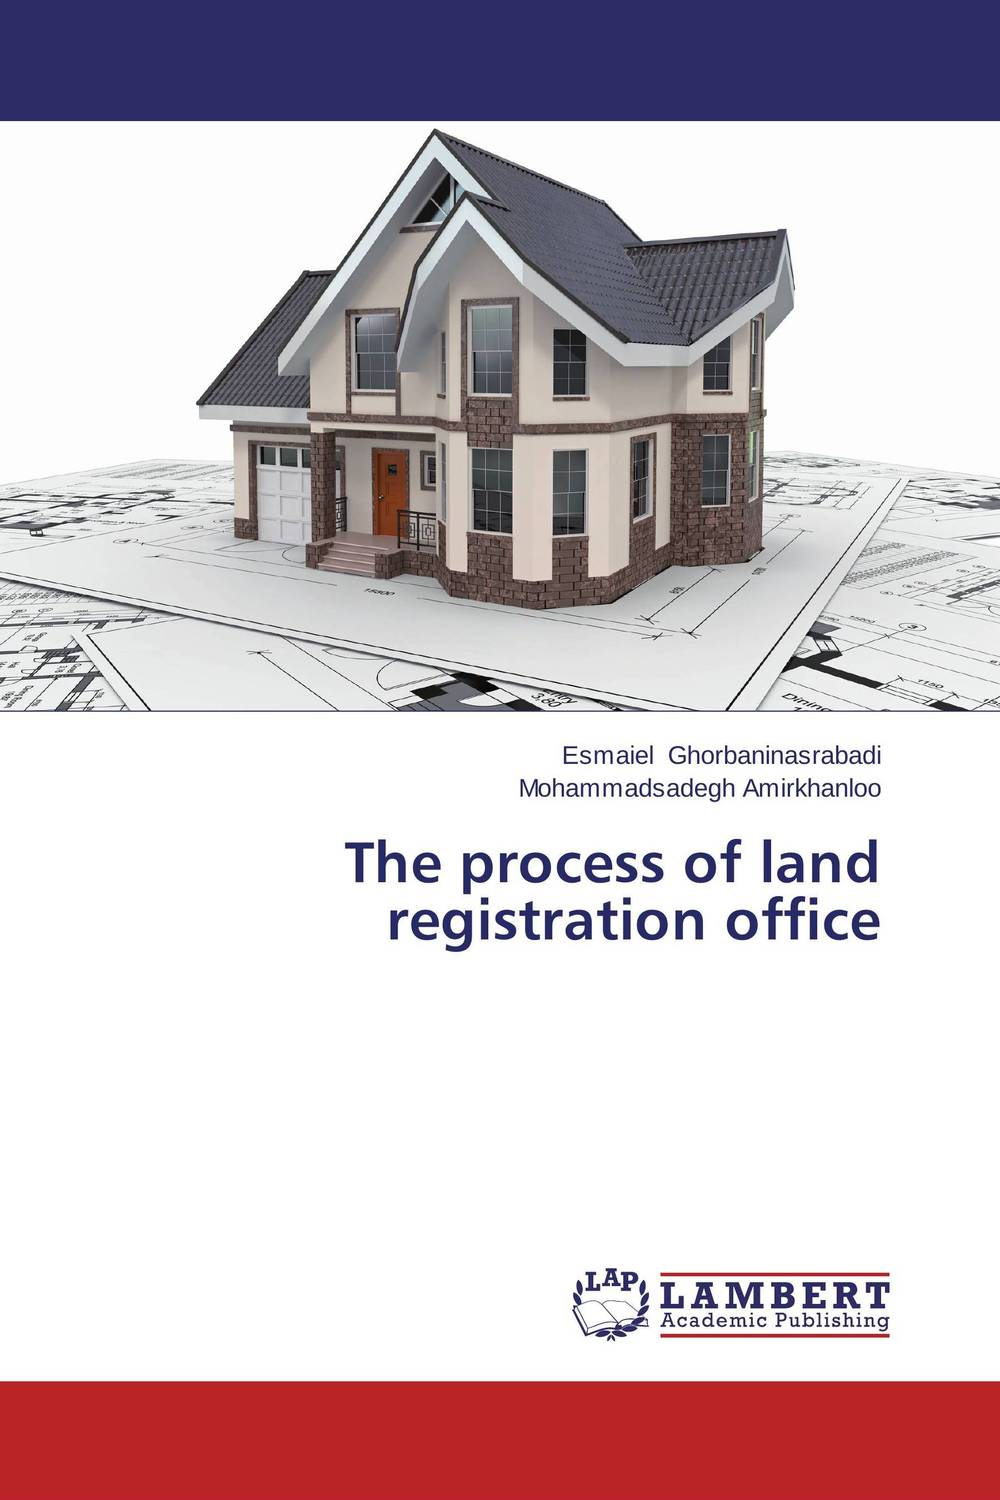 The process of land registration office